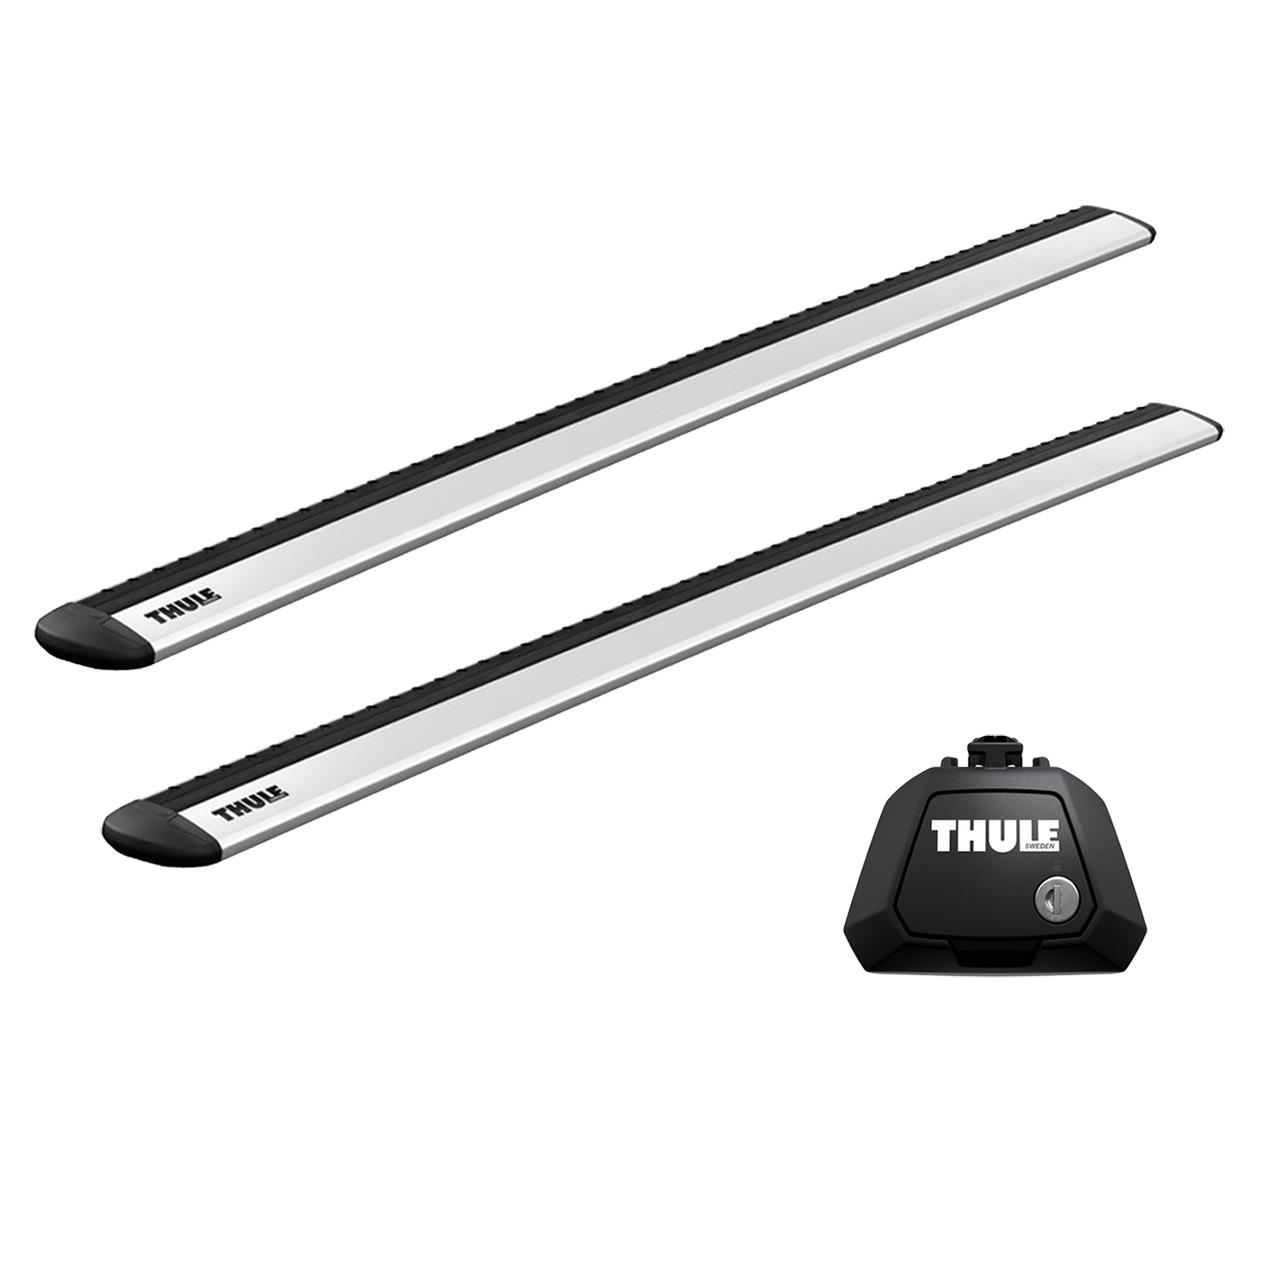 Напречни греди Thule Evo Raised Rail WingBar Evo 135cm за HYUNDAI Veracruz 5 врати Van 2001- (S